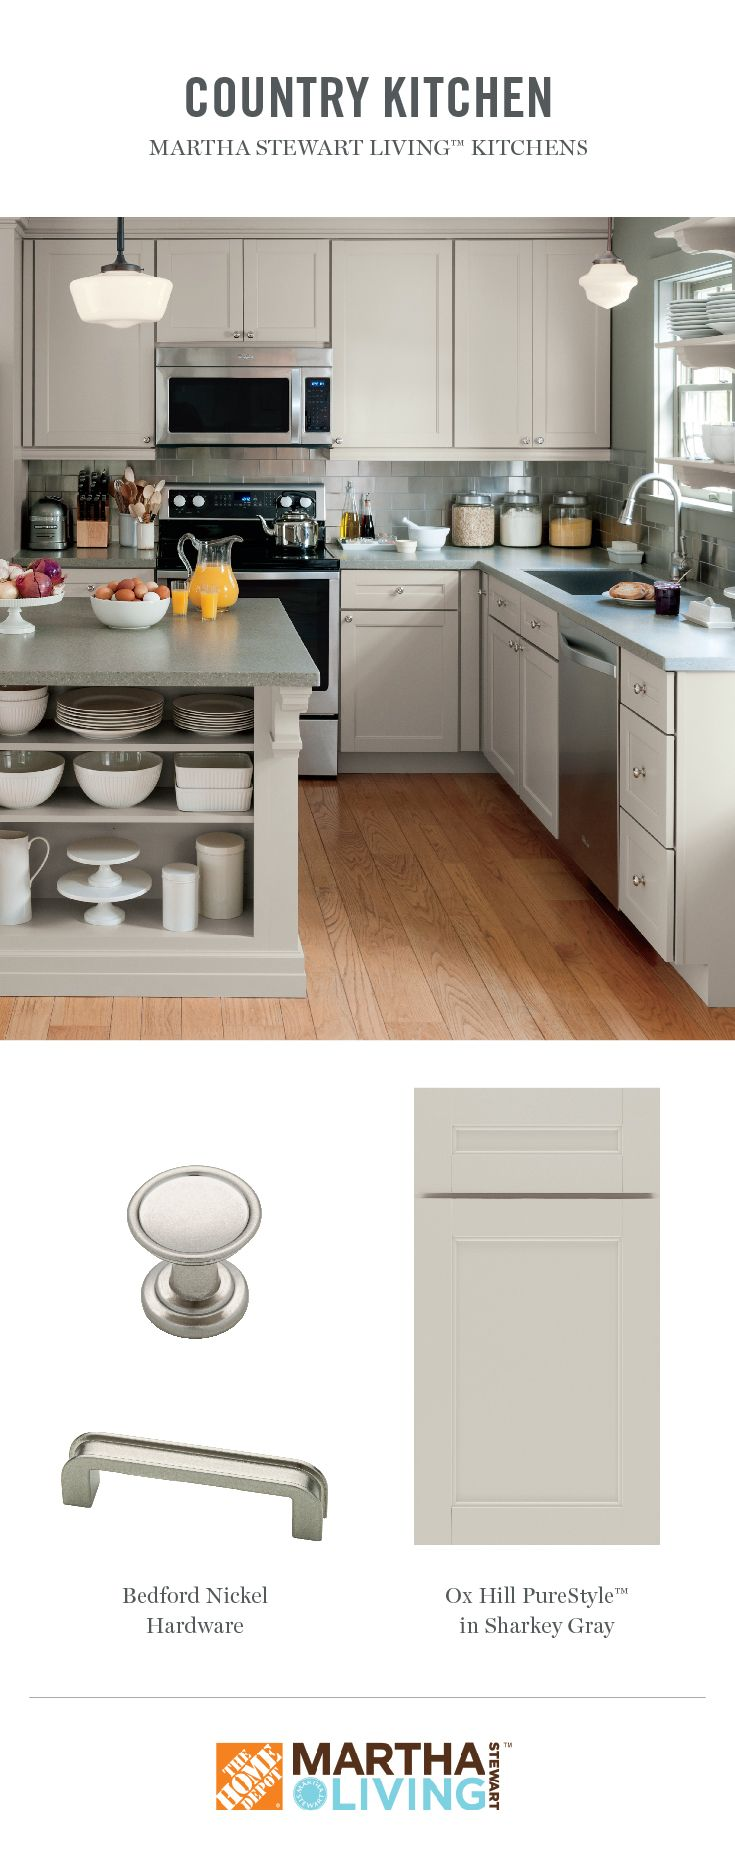 Take A Look Inside Martha Stewart S Renovated Kitchen At Her Home In Maine She Used The Mar Martha Stewart Living Kitchen House Design Kitchen Kitchen Remodel